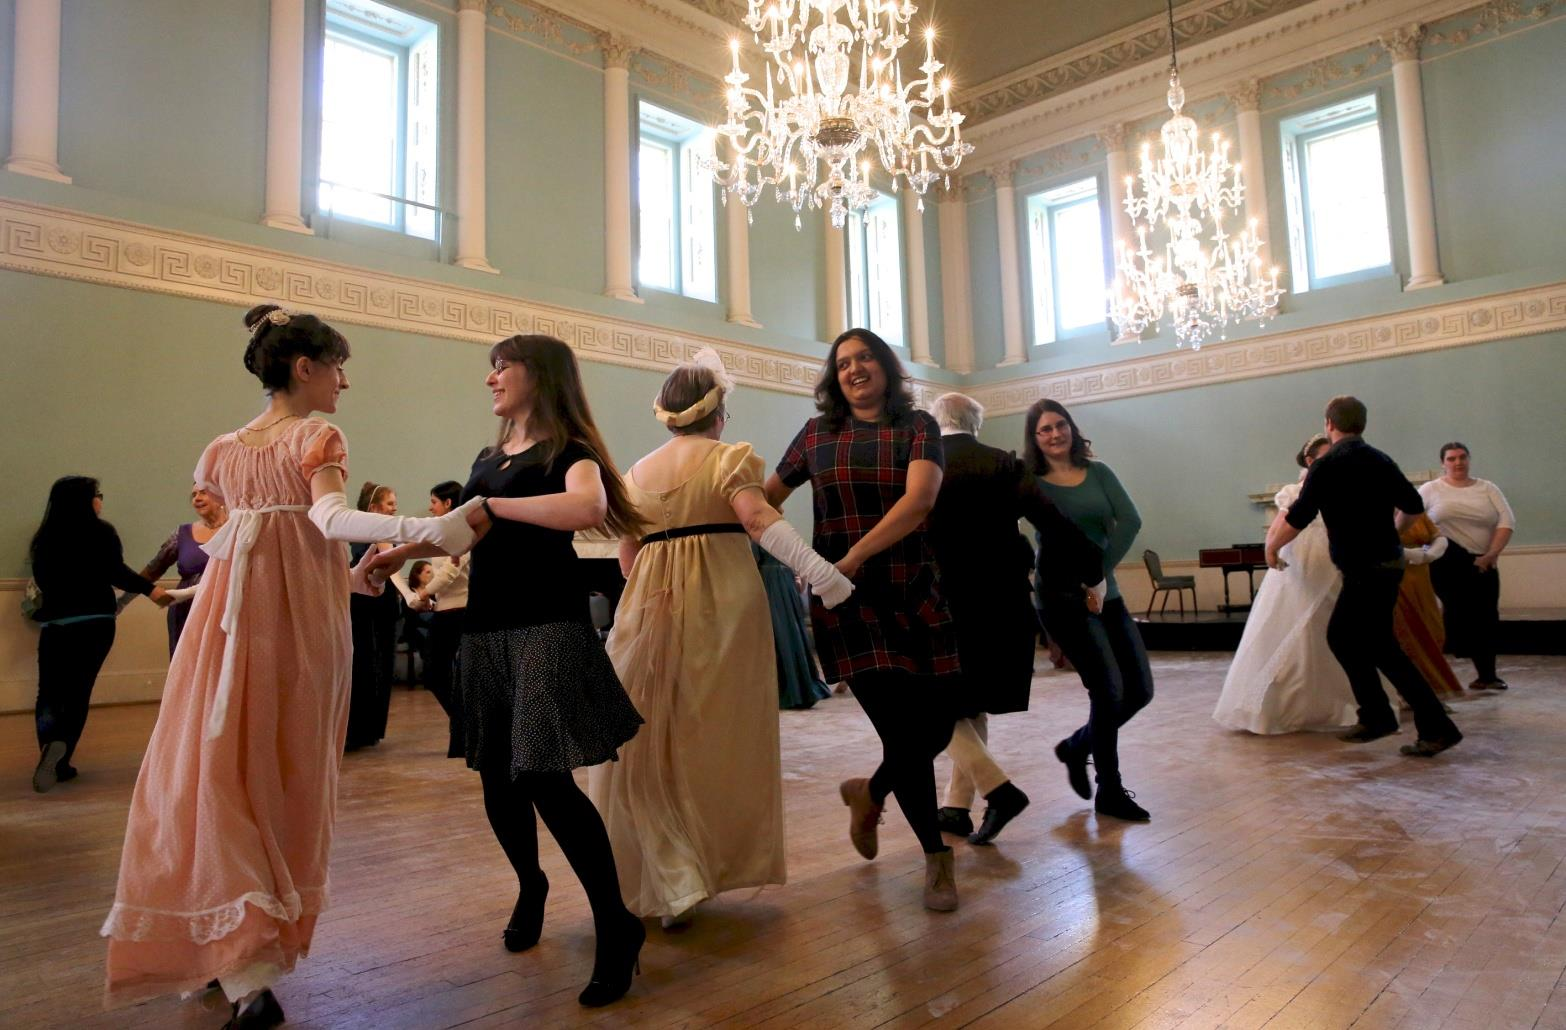 opportunity to learn Georgian dances, listen to 18th century music, gamble at the card tables, try on fancy costumes and make-up,